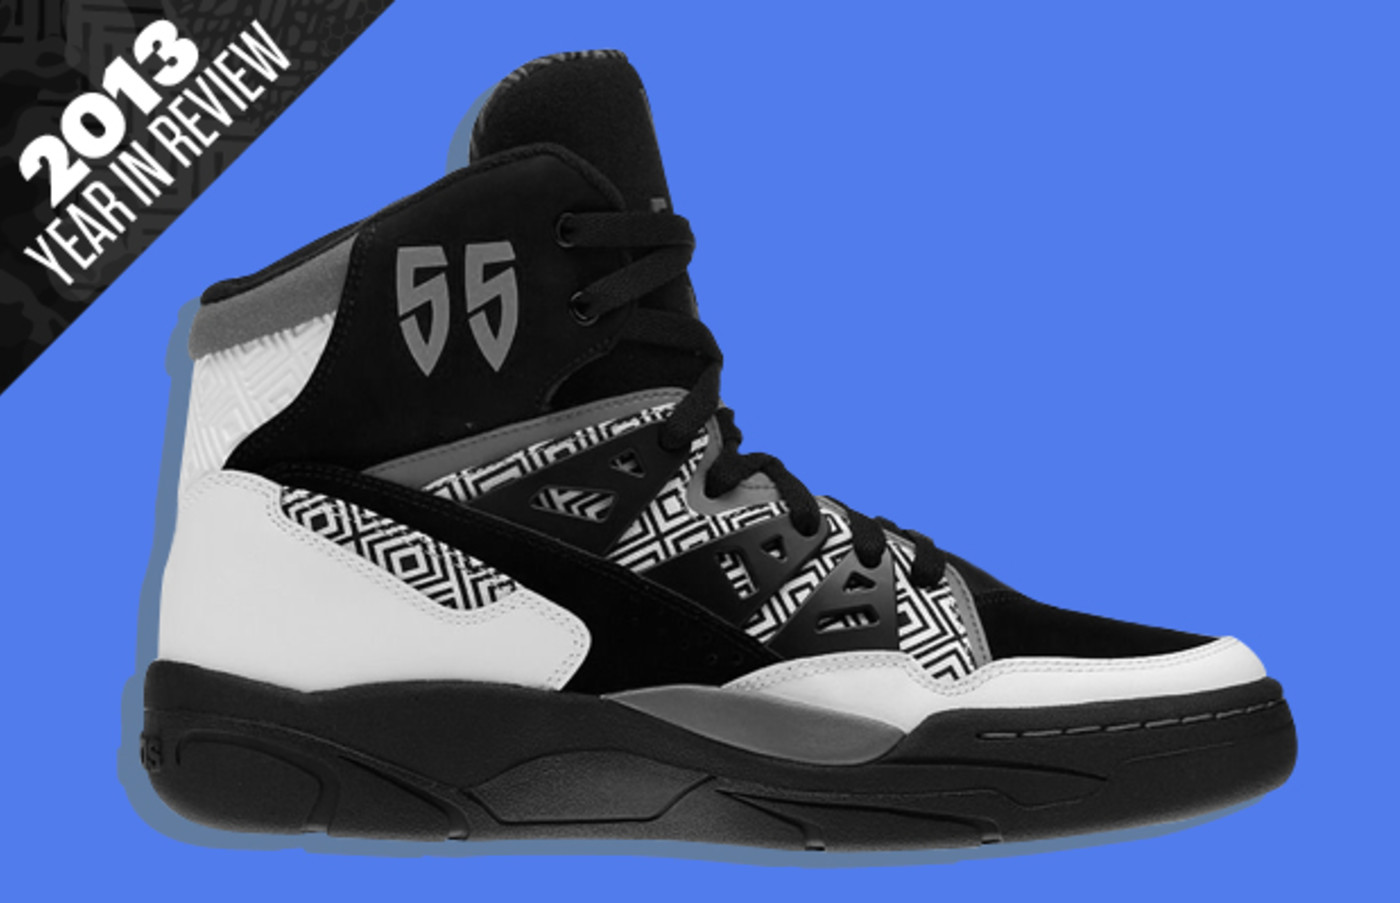 The 20 Best Retro Basketball Sneakers